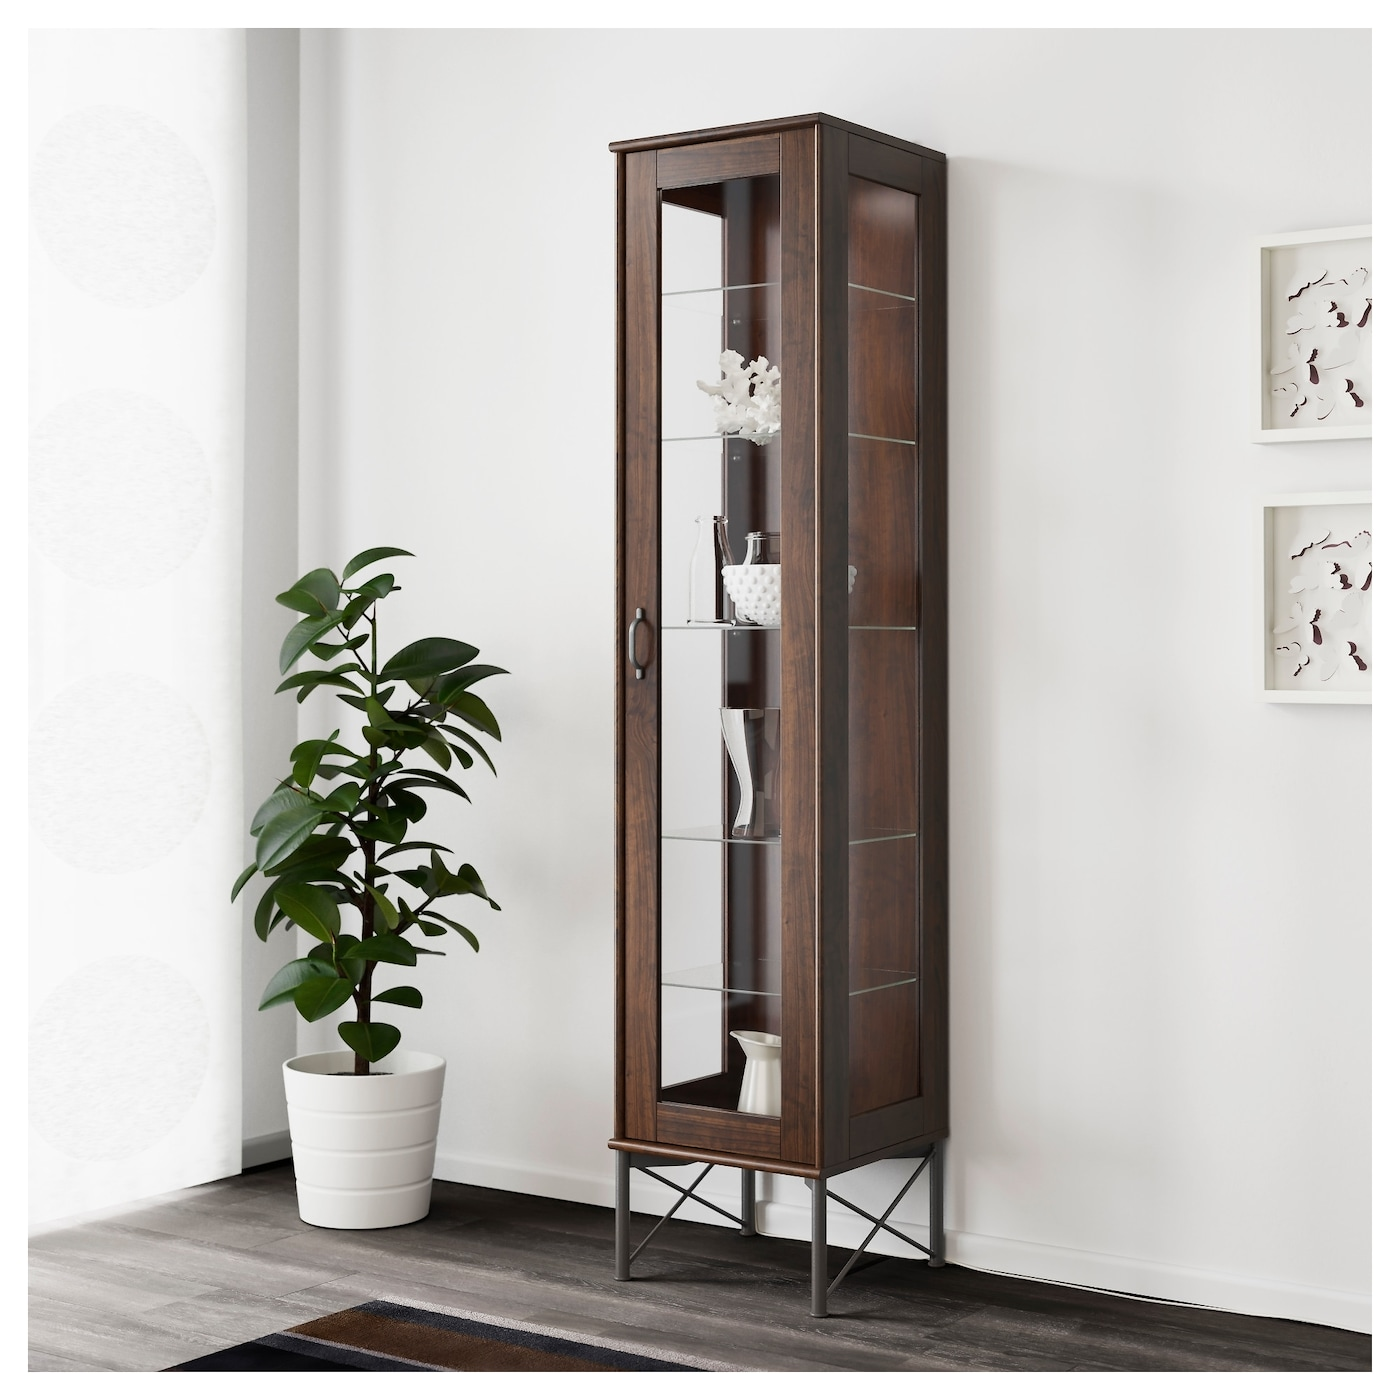 Tockarp glass door cabinet brown 38x175 cm ikea - Ikea glass cabinets ...